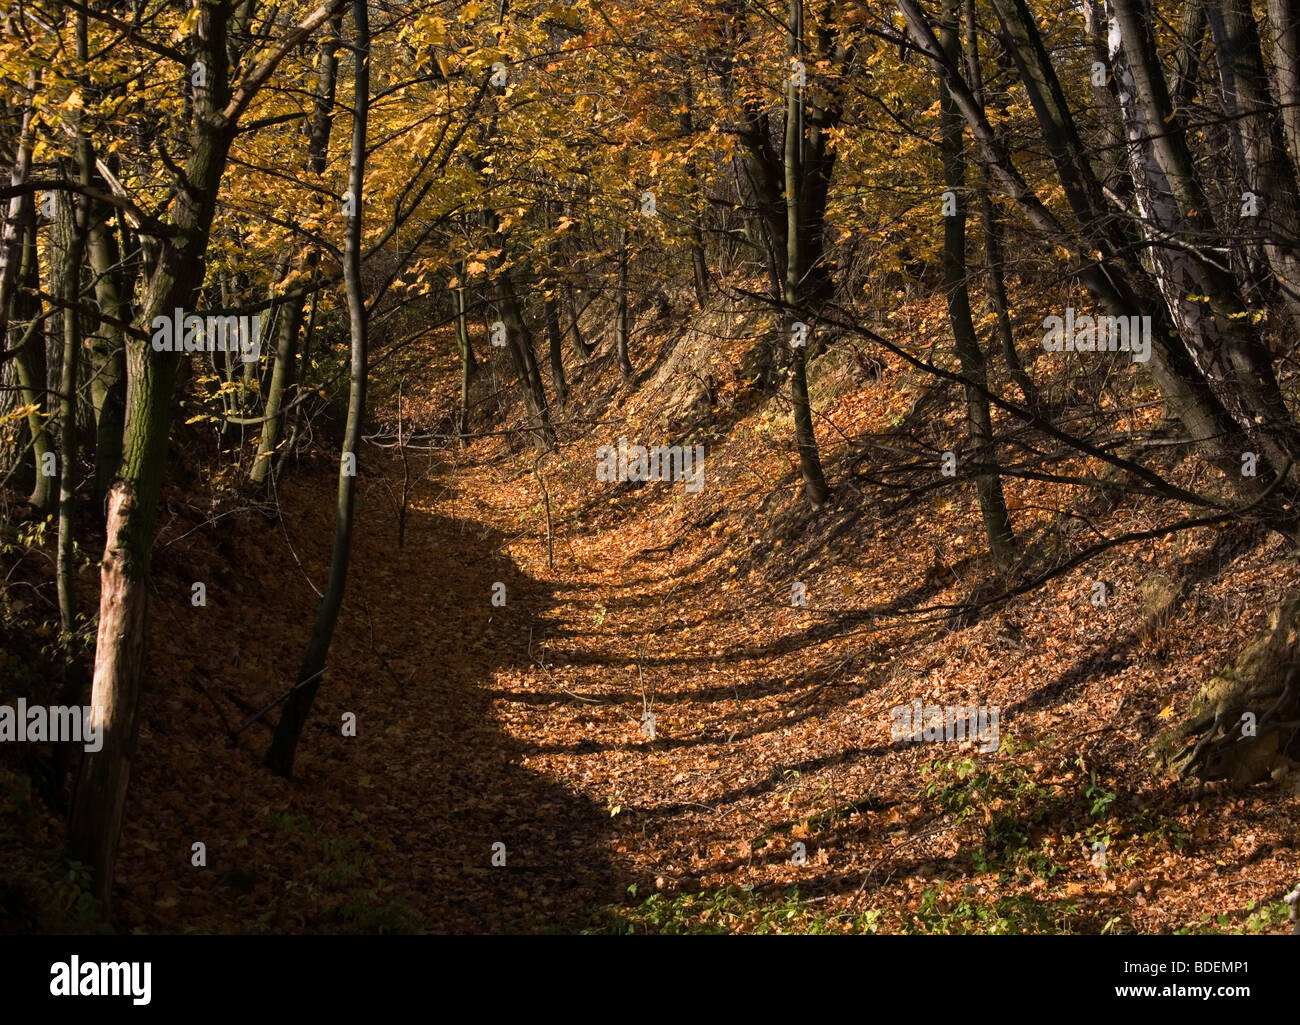 Lesser Poland nature trees - Stock Image